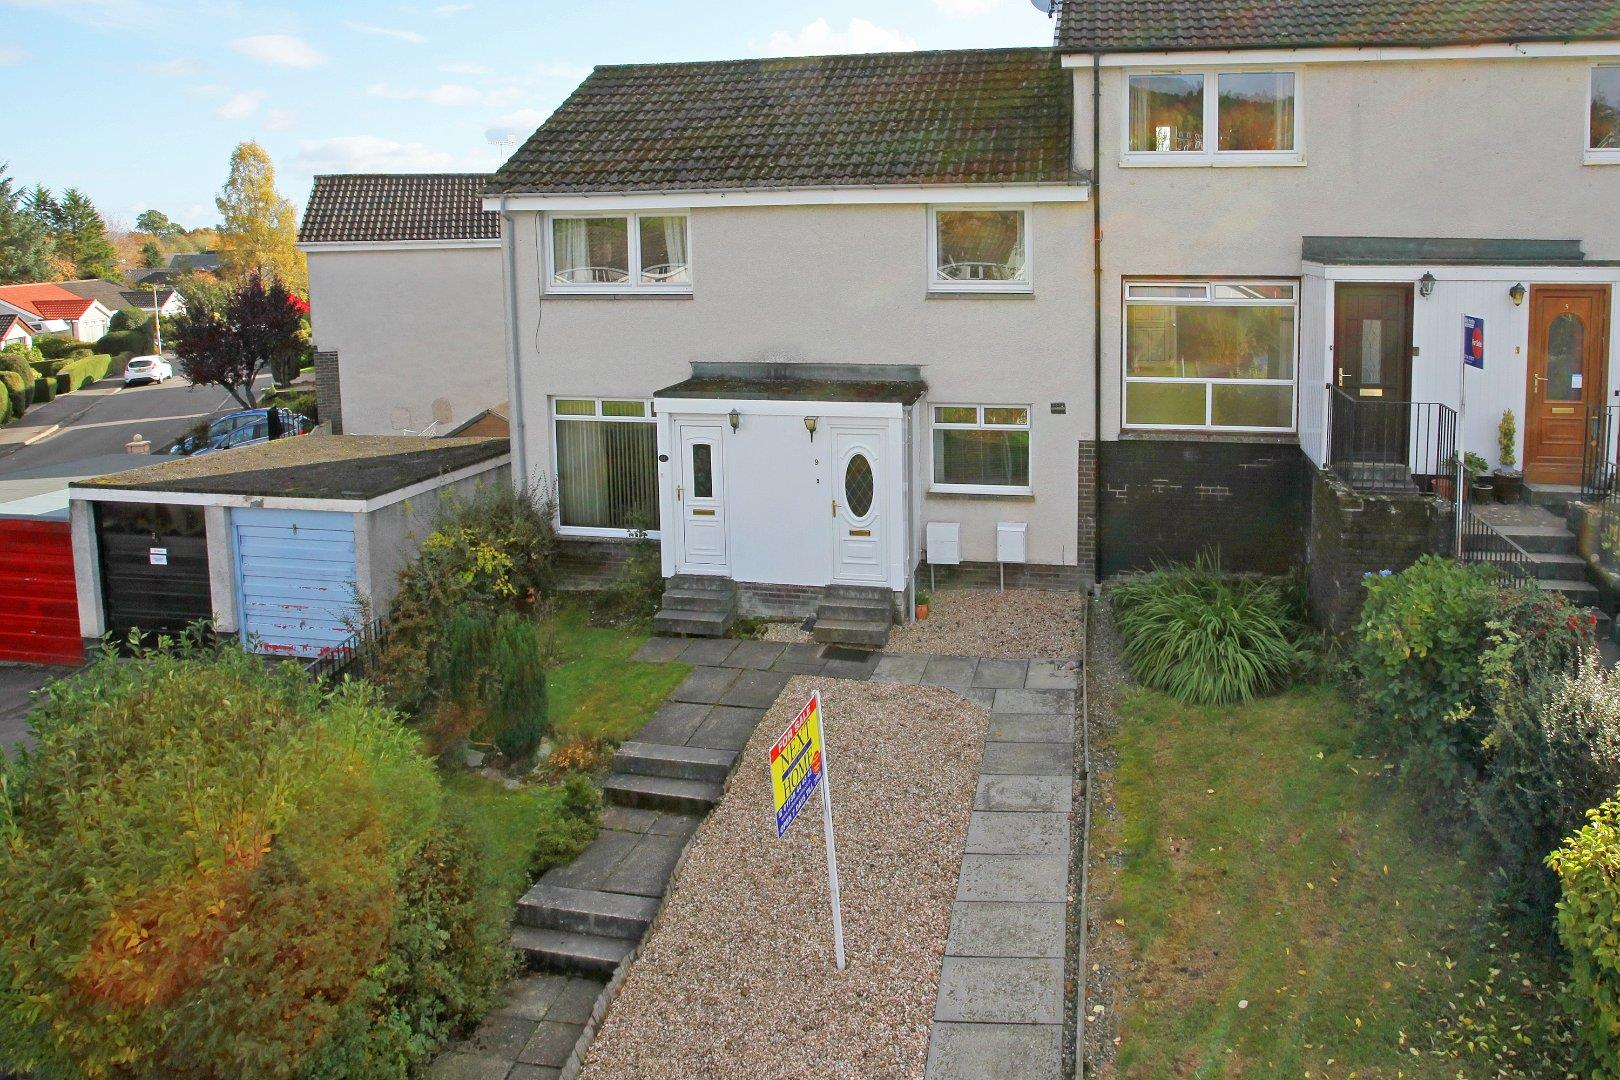 9, Banks Crescent, Crieff, Perthshire, PH7 3SR, UK